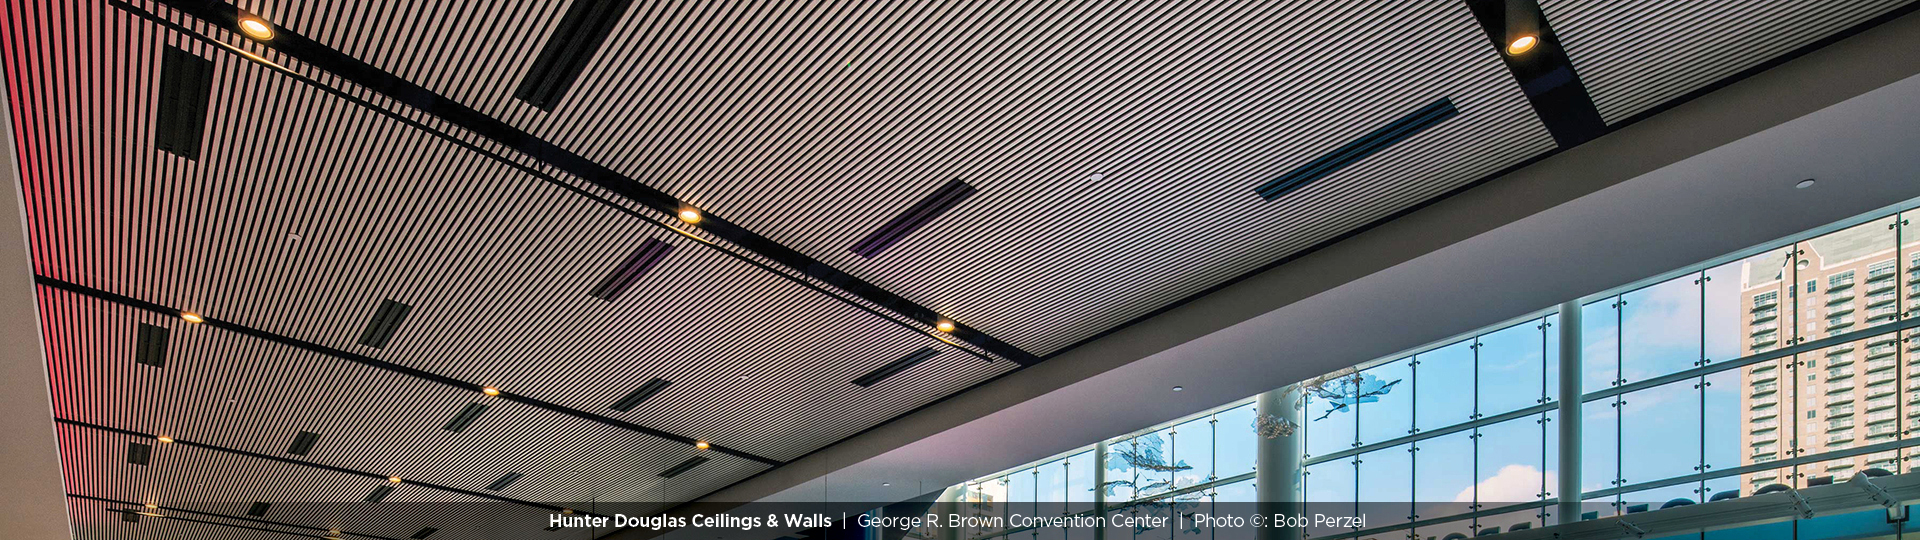 Continuous Linear Grille - Specialty Ceilings and Walls - CertainTeed